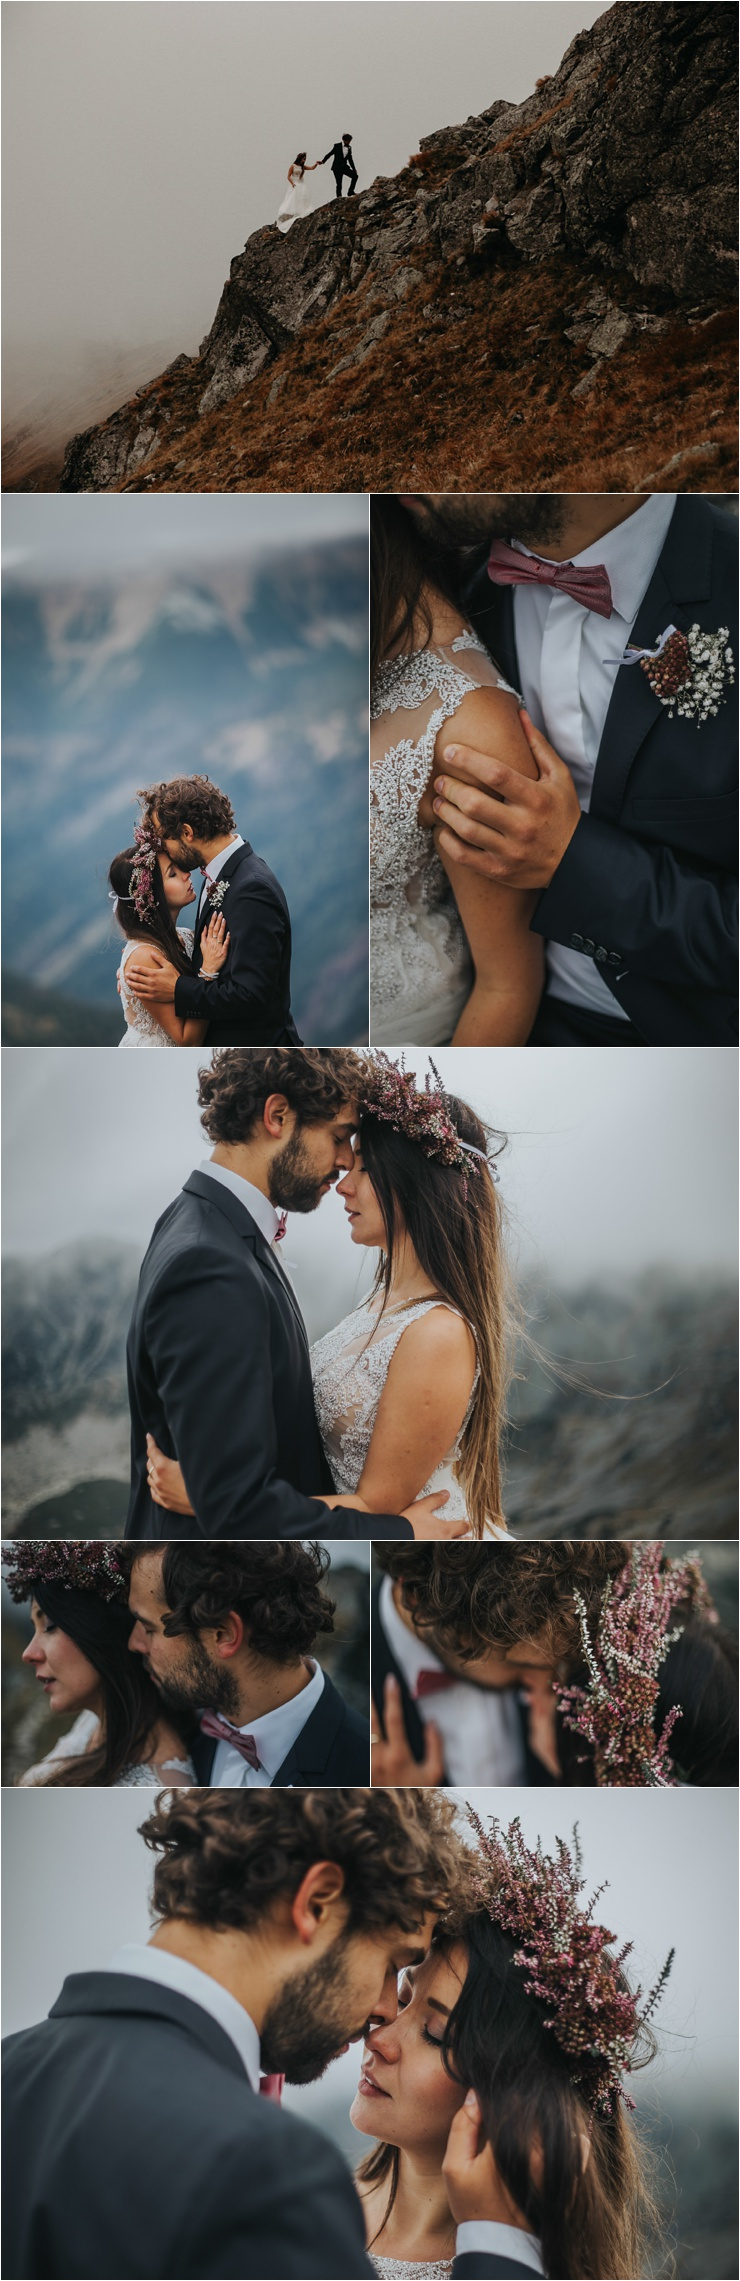 After-Wedding Shoot In The Tatra Mountains In Poland by Fotomagoria